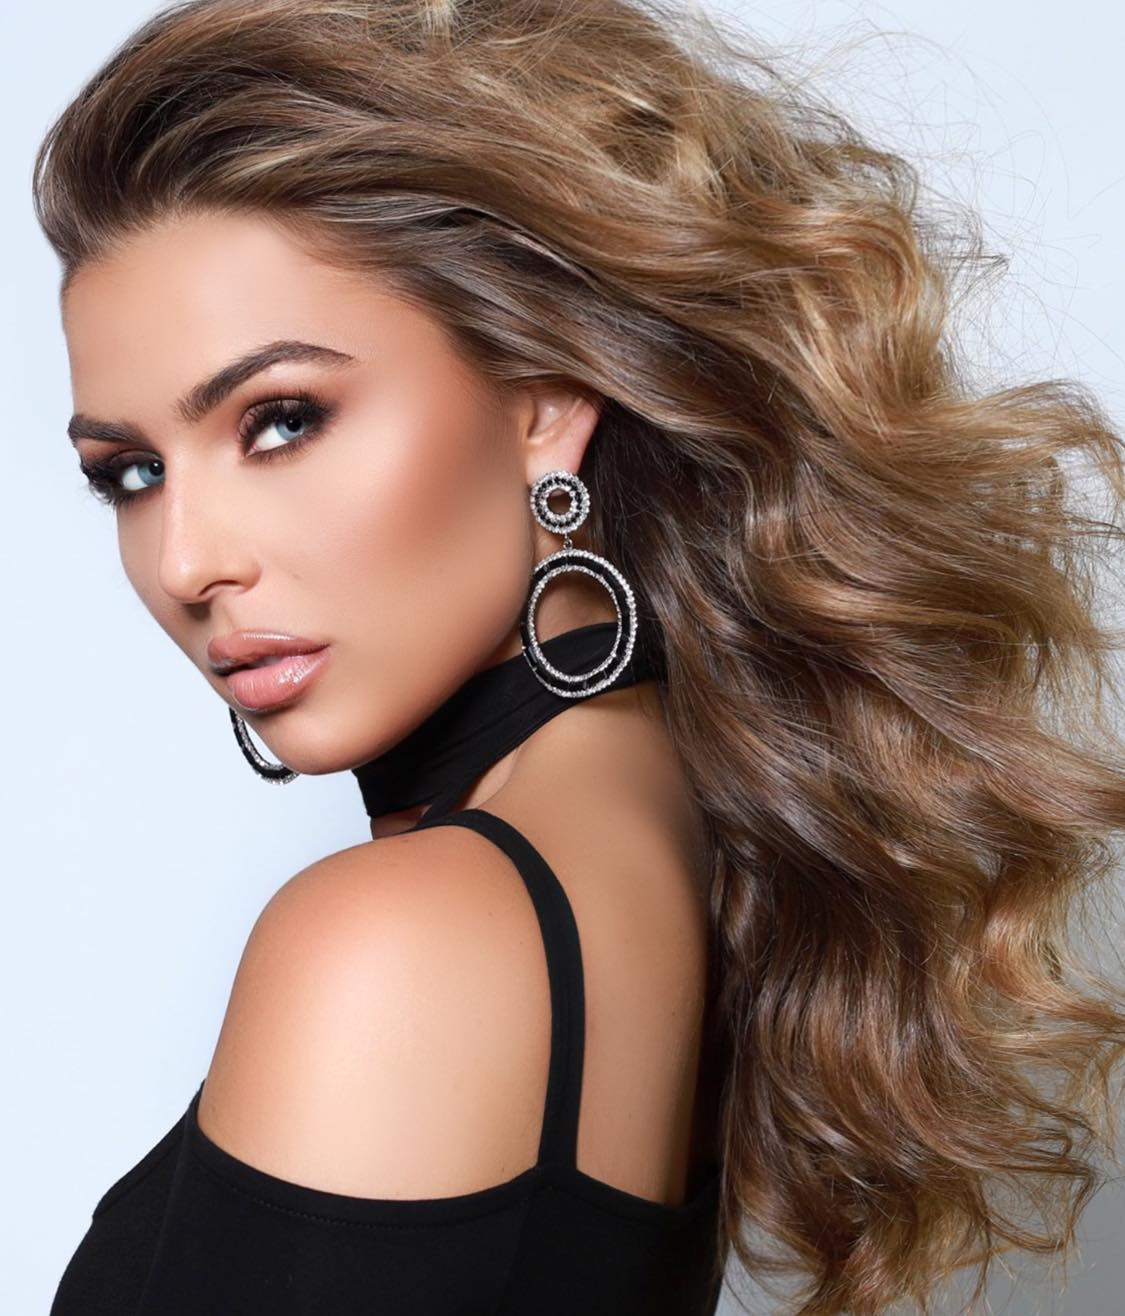 Former Miss Trussville competing in Miss Arizona USA